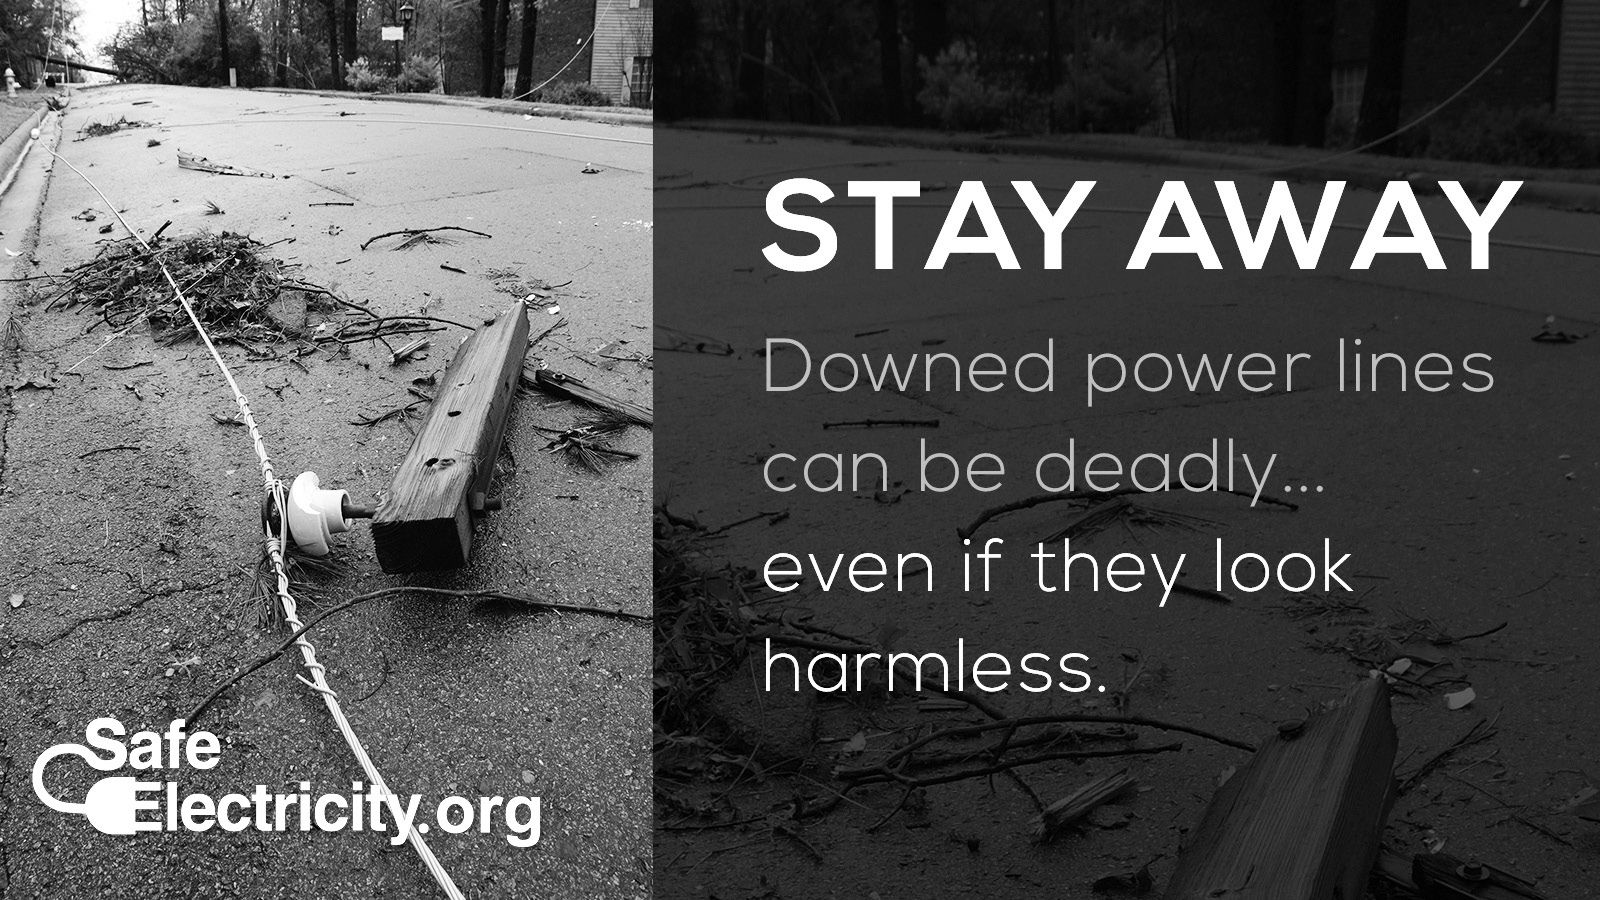 Stay away. Downed power lines can be deadly… even if they look harmless. SafeElectricity.org.